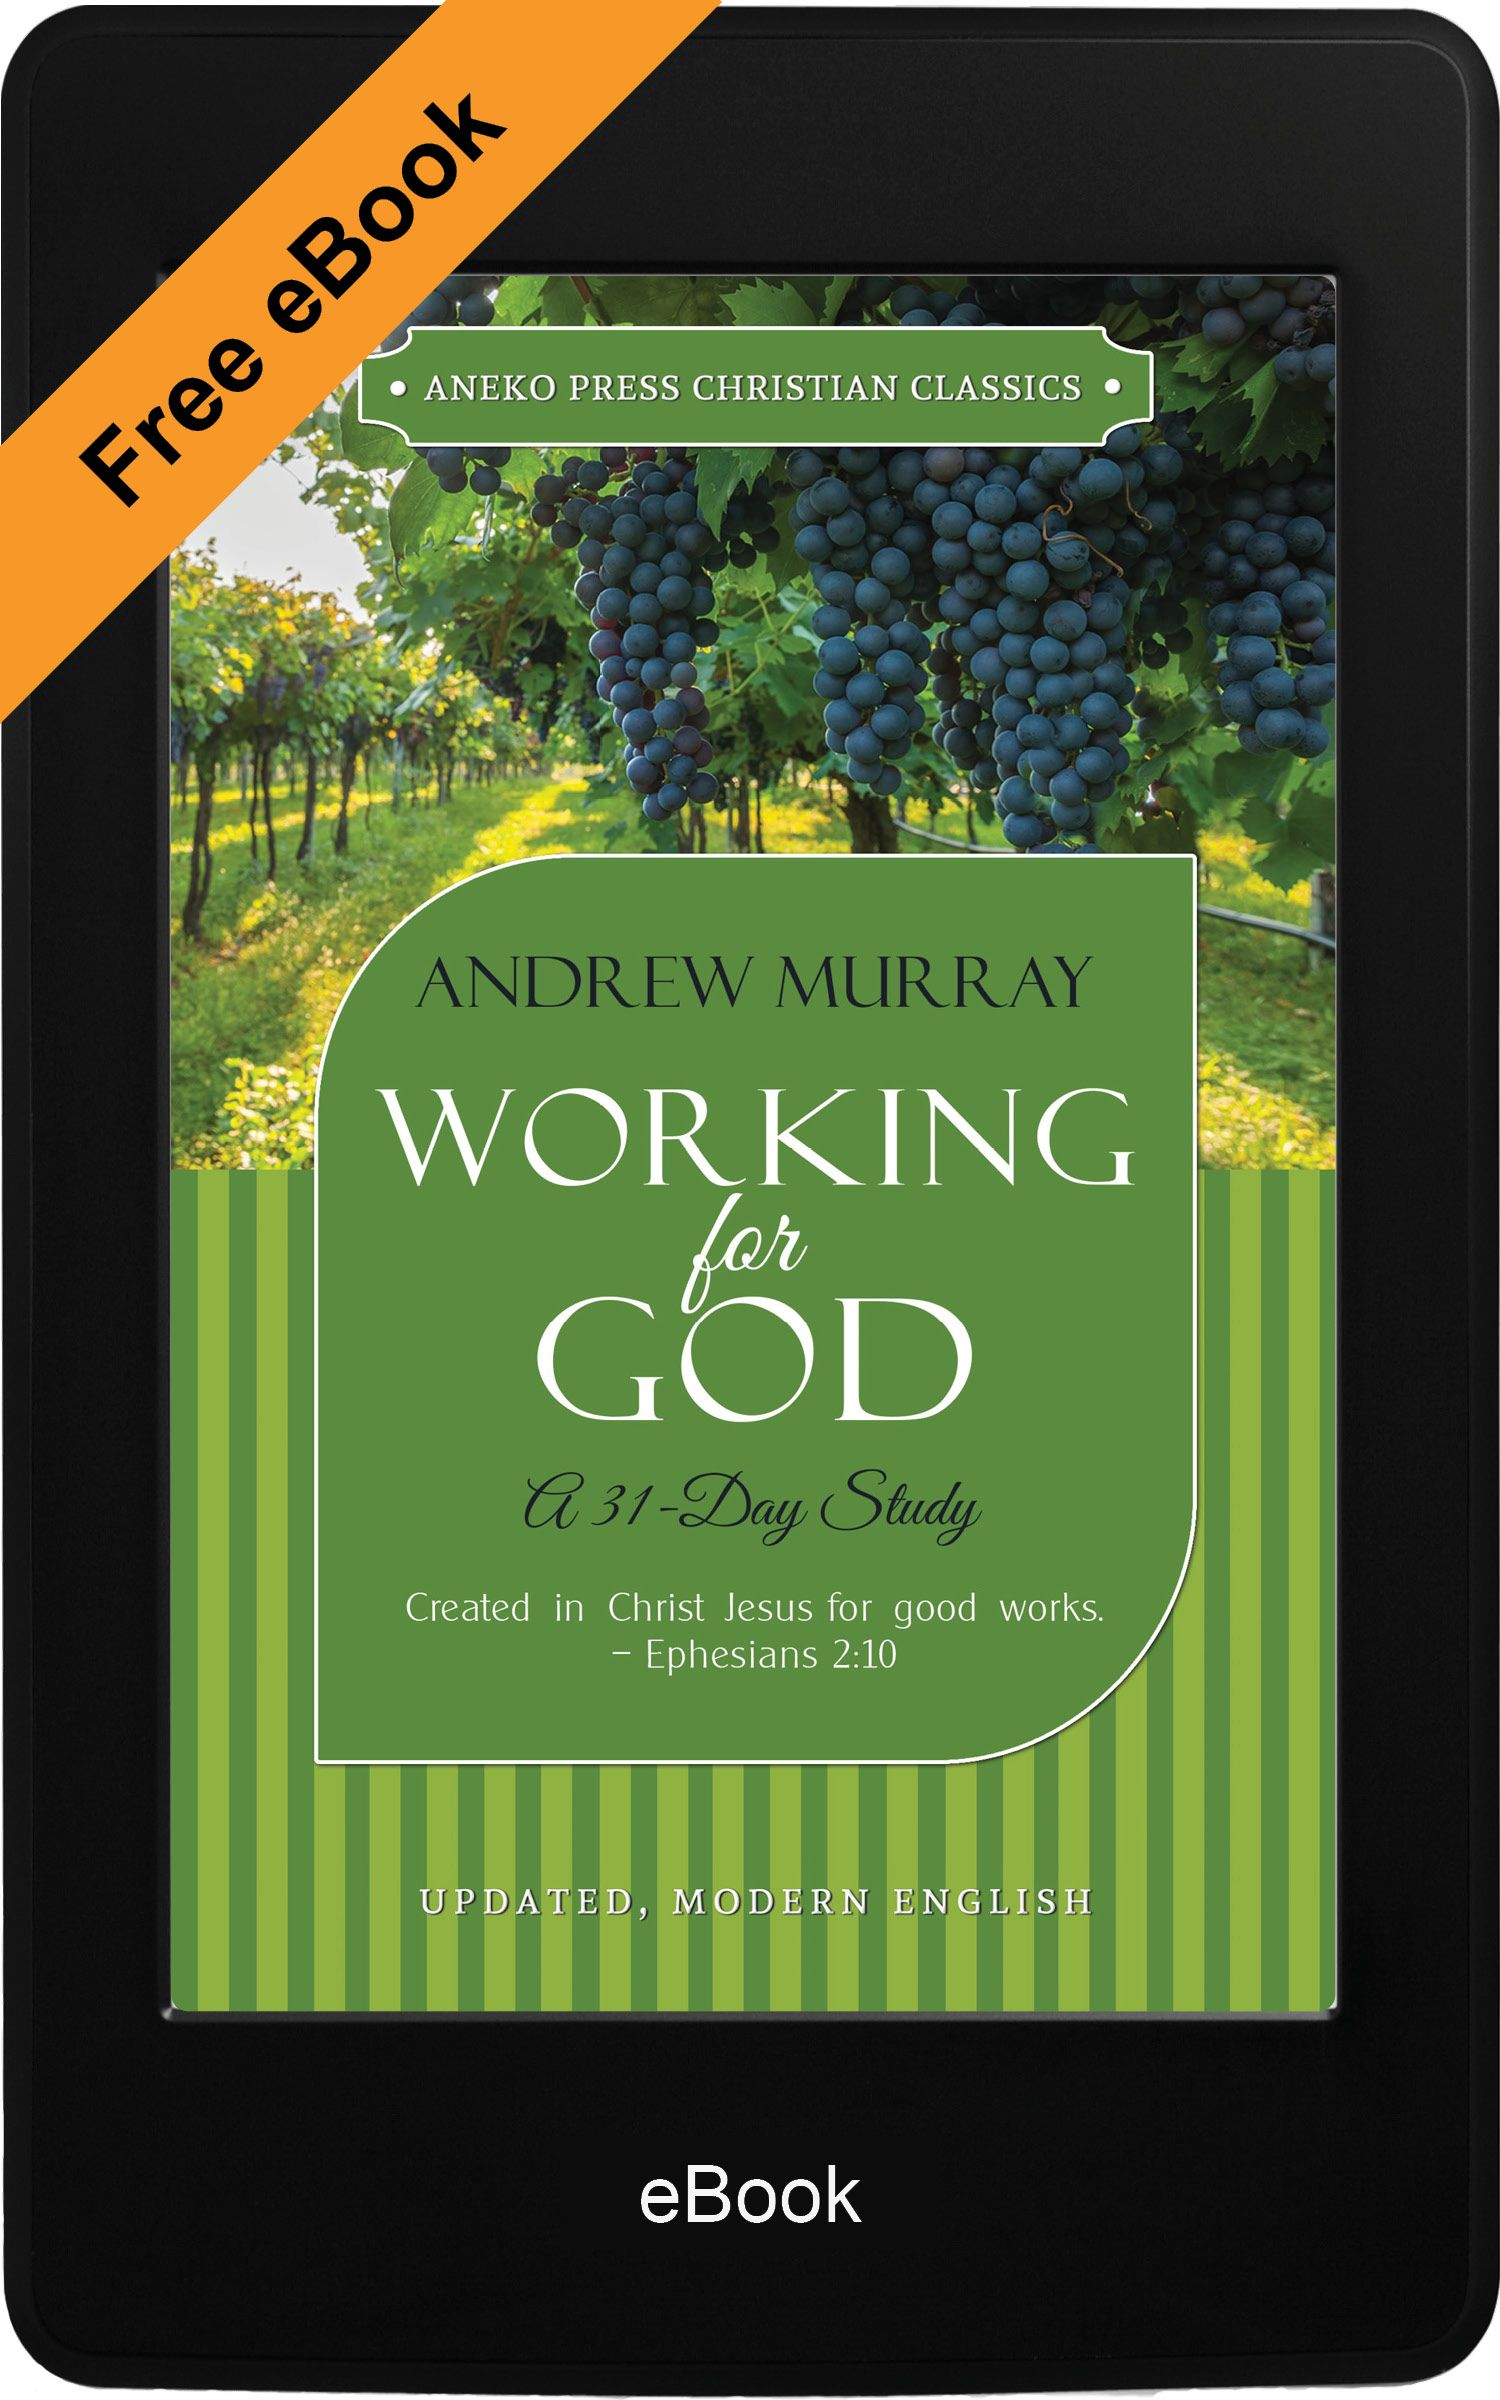 Working for God (eBook) | Free Christian ebooks for kindle